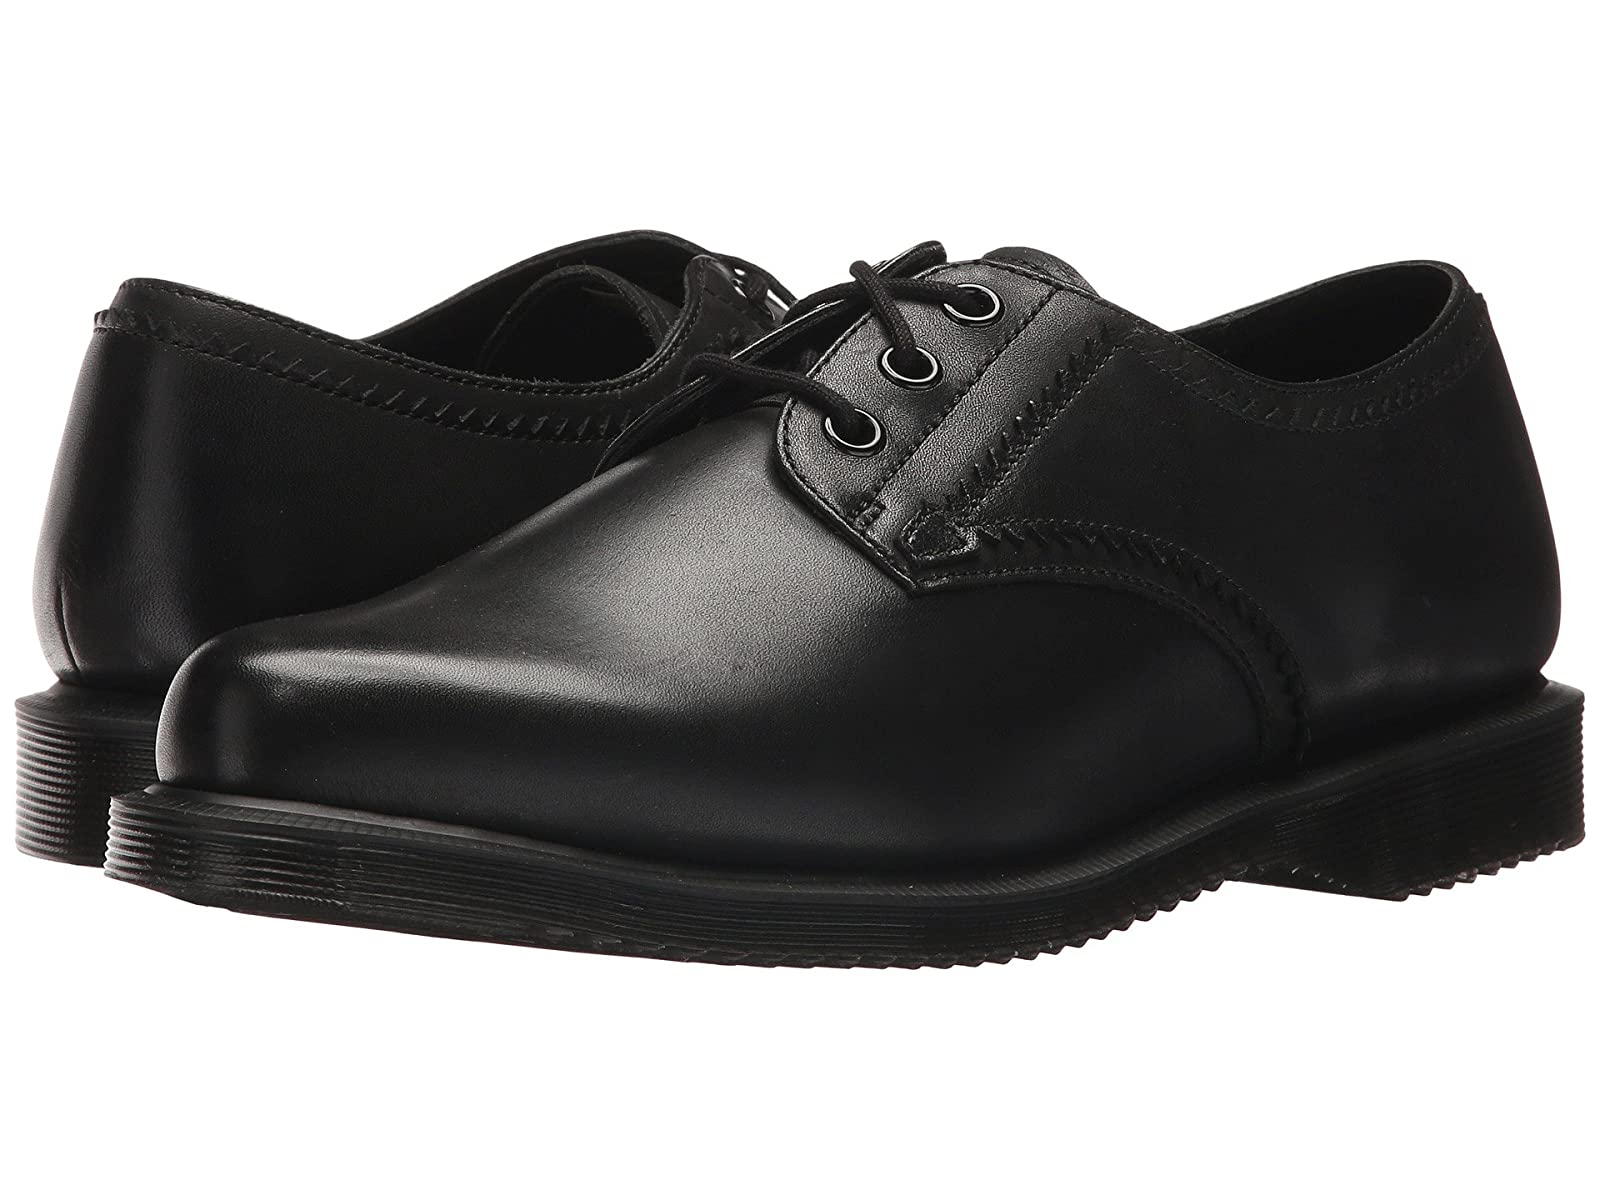 Dr. Martens TruliaCheap and distinctive eye-catching shoes